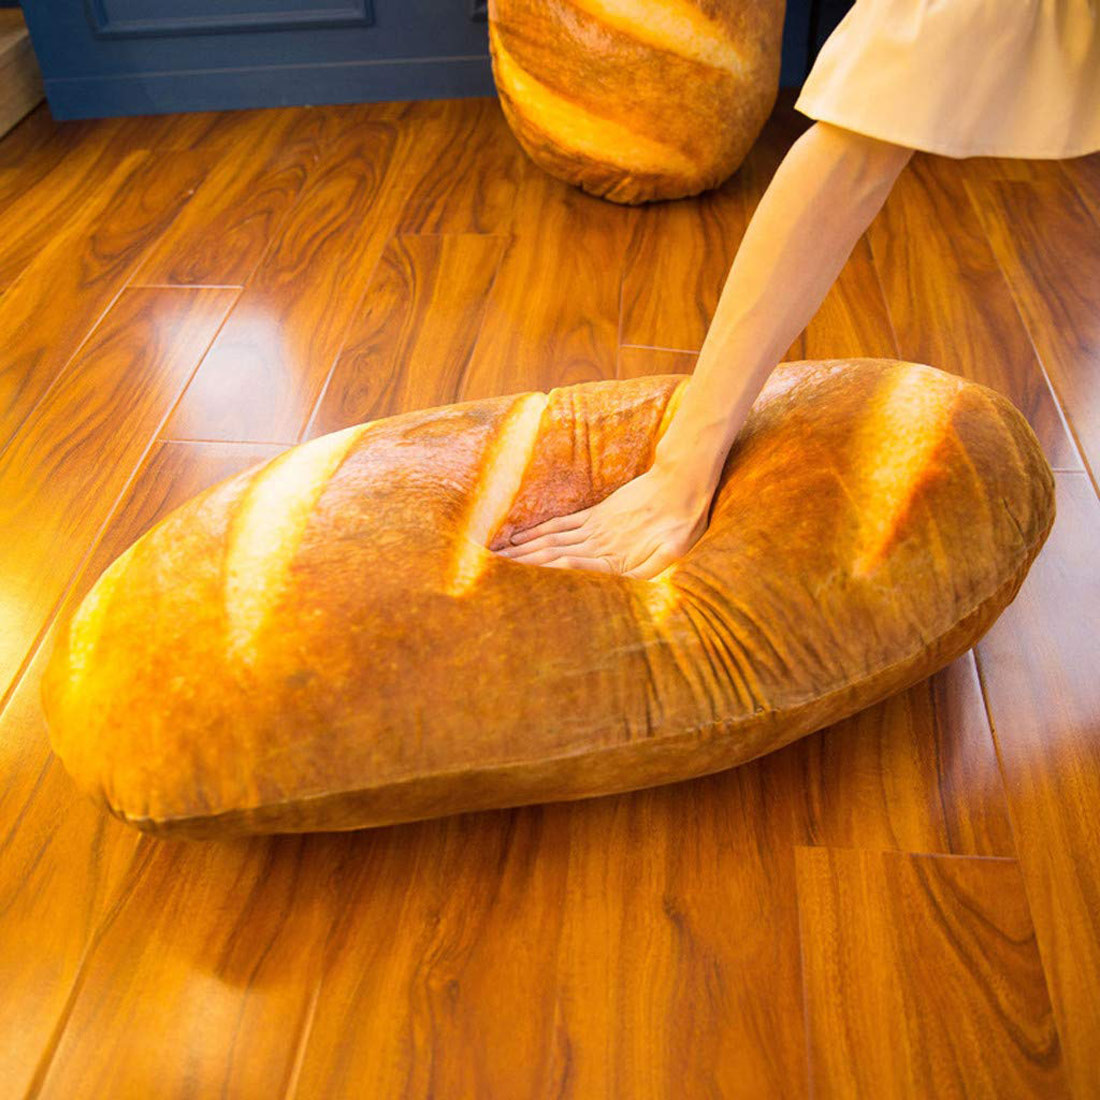 Gigantic Loaf Of Bread Pillow